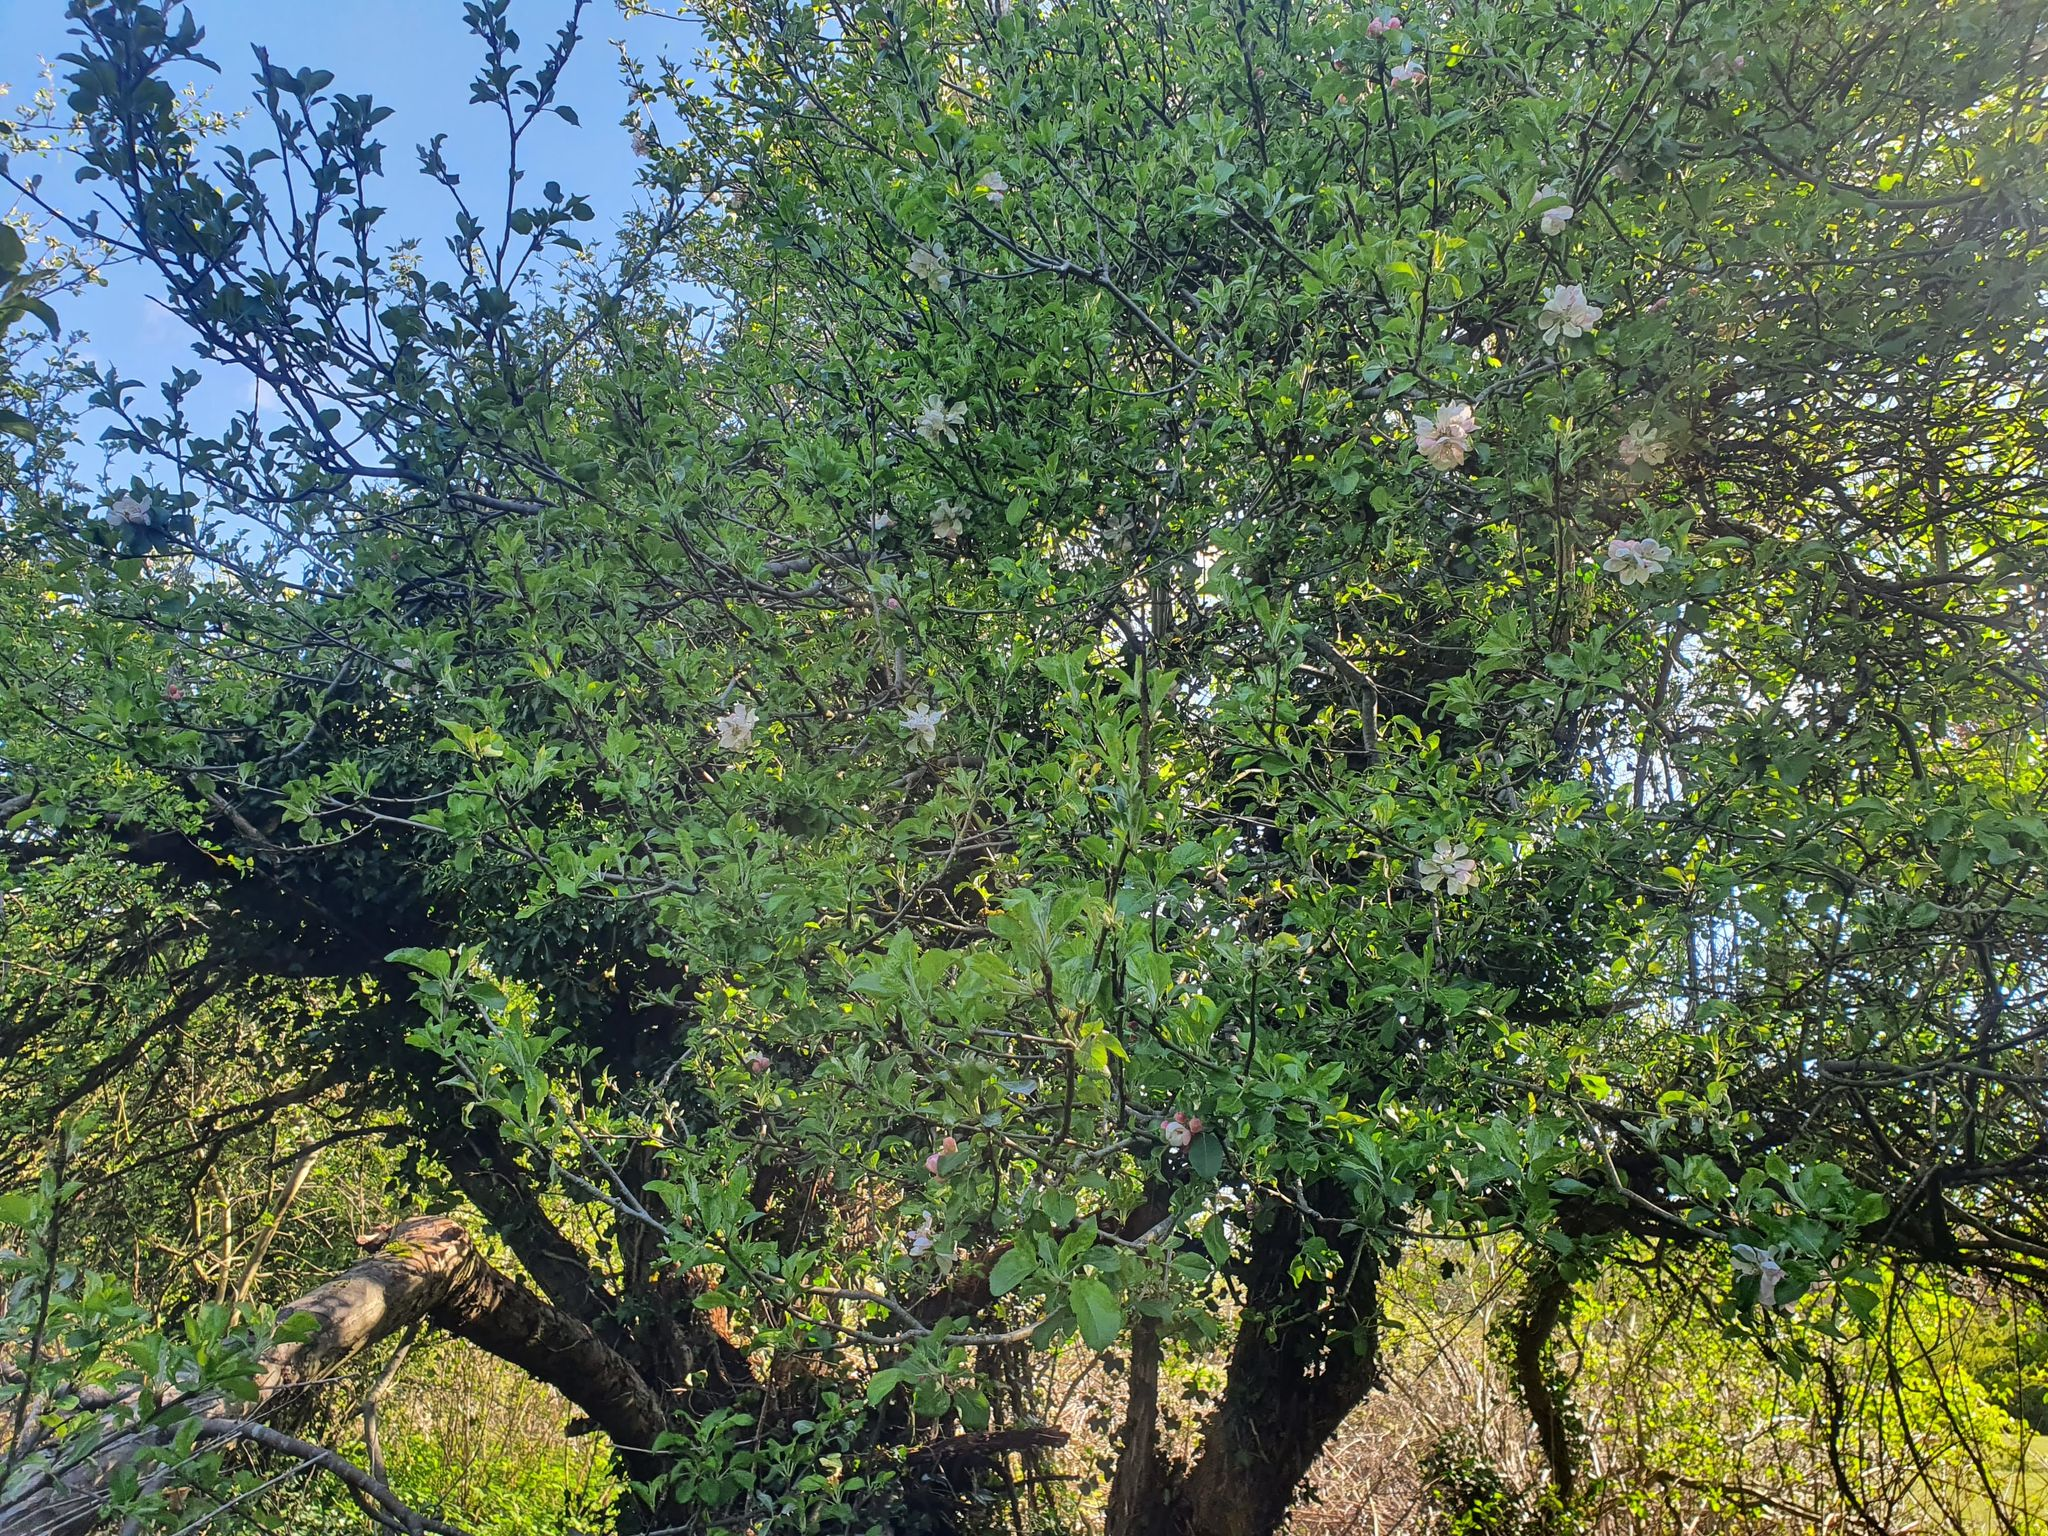 Forest Futures Uncovers an Old Apple Tree